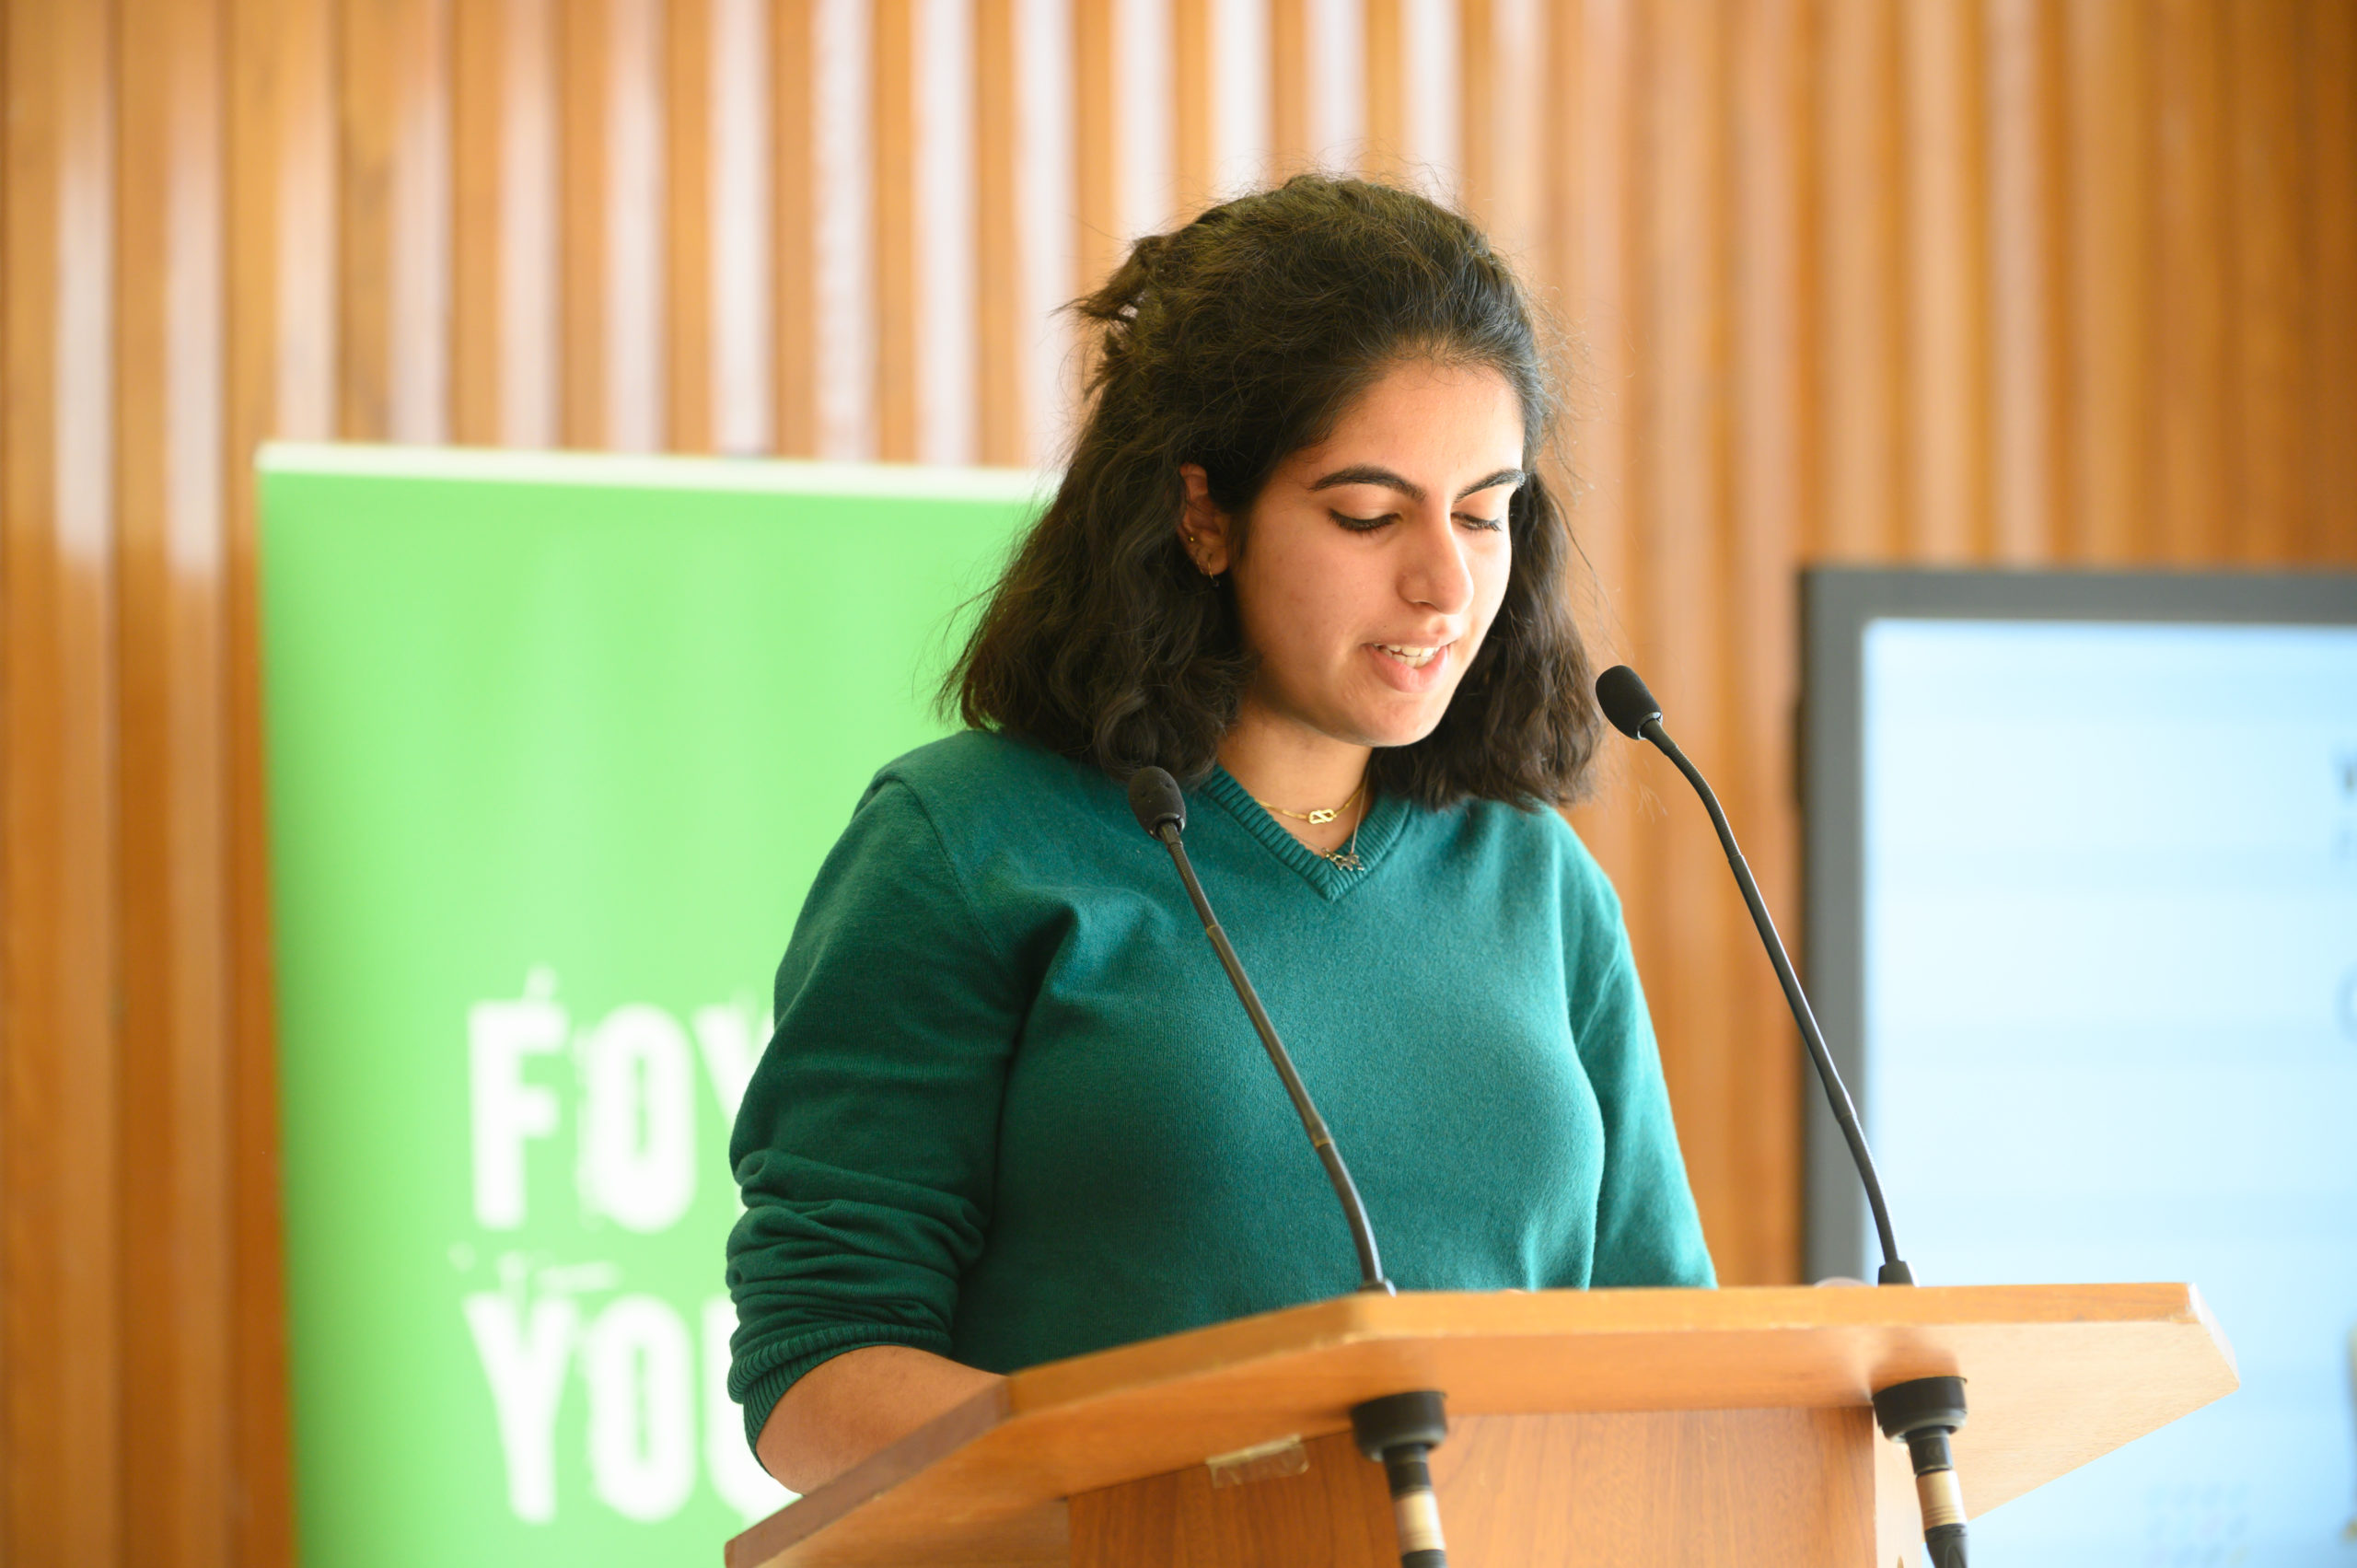 Photo of Cia Mangat reading at a podium with a green Foyle Young Poets banner behind her